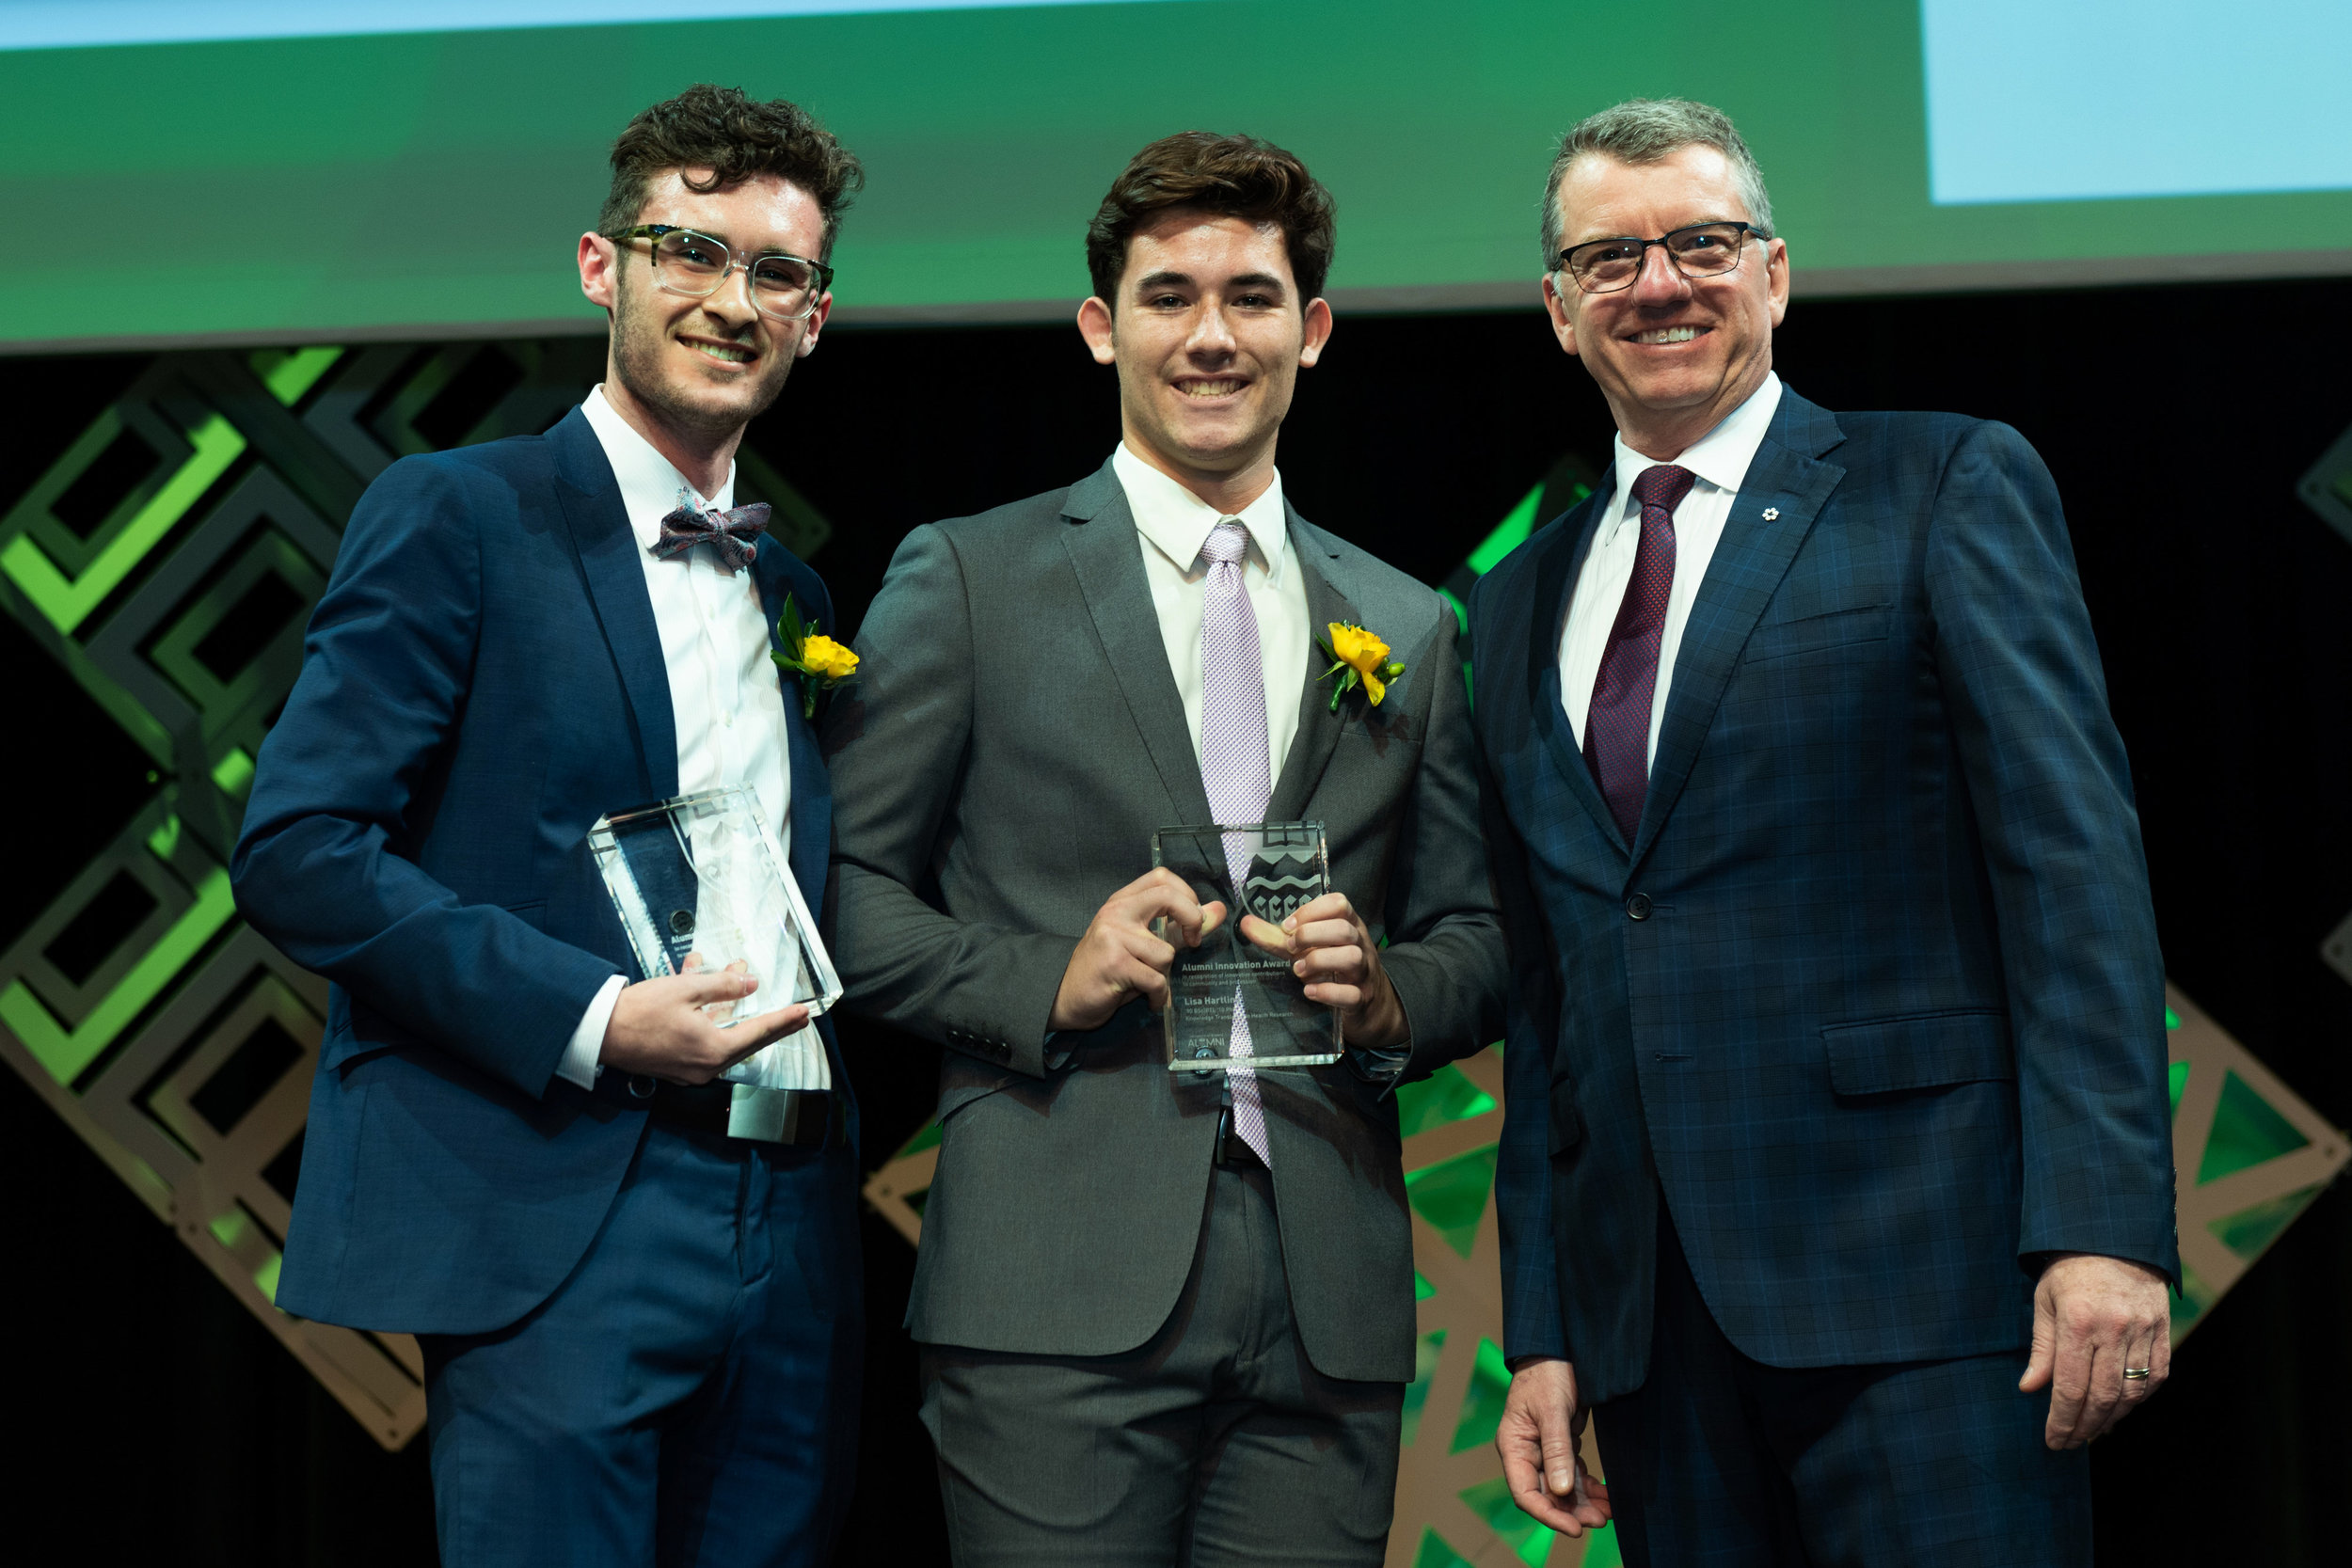 The children of Drs. Scott and Hartling collecting the University of Alberta 2018 Alumni Innovator of the Year Award, on their behalf.